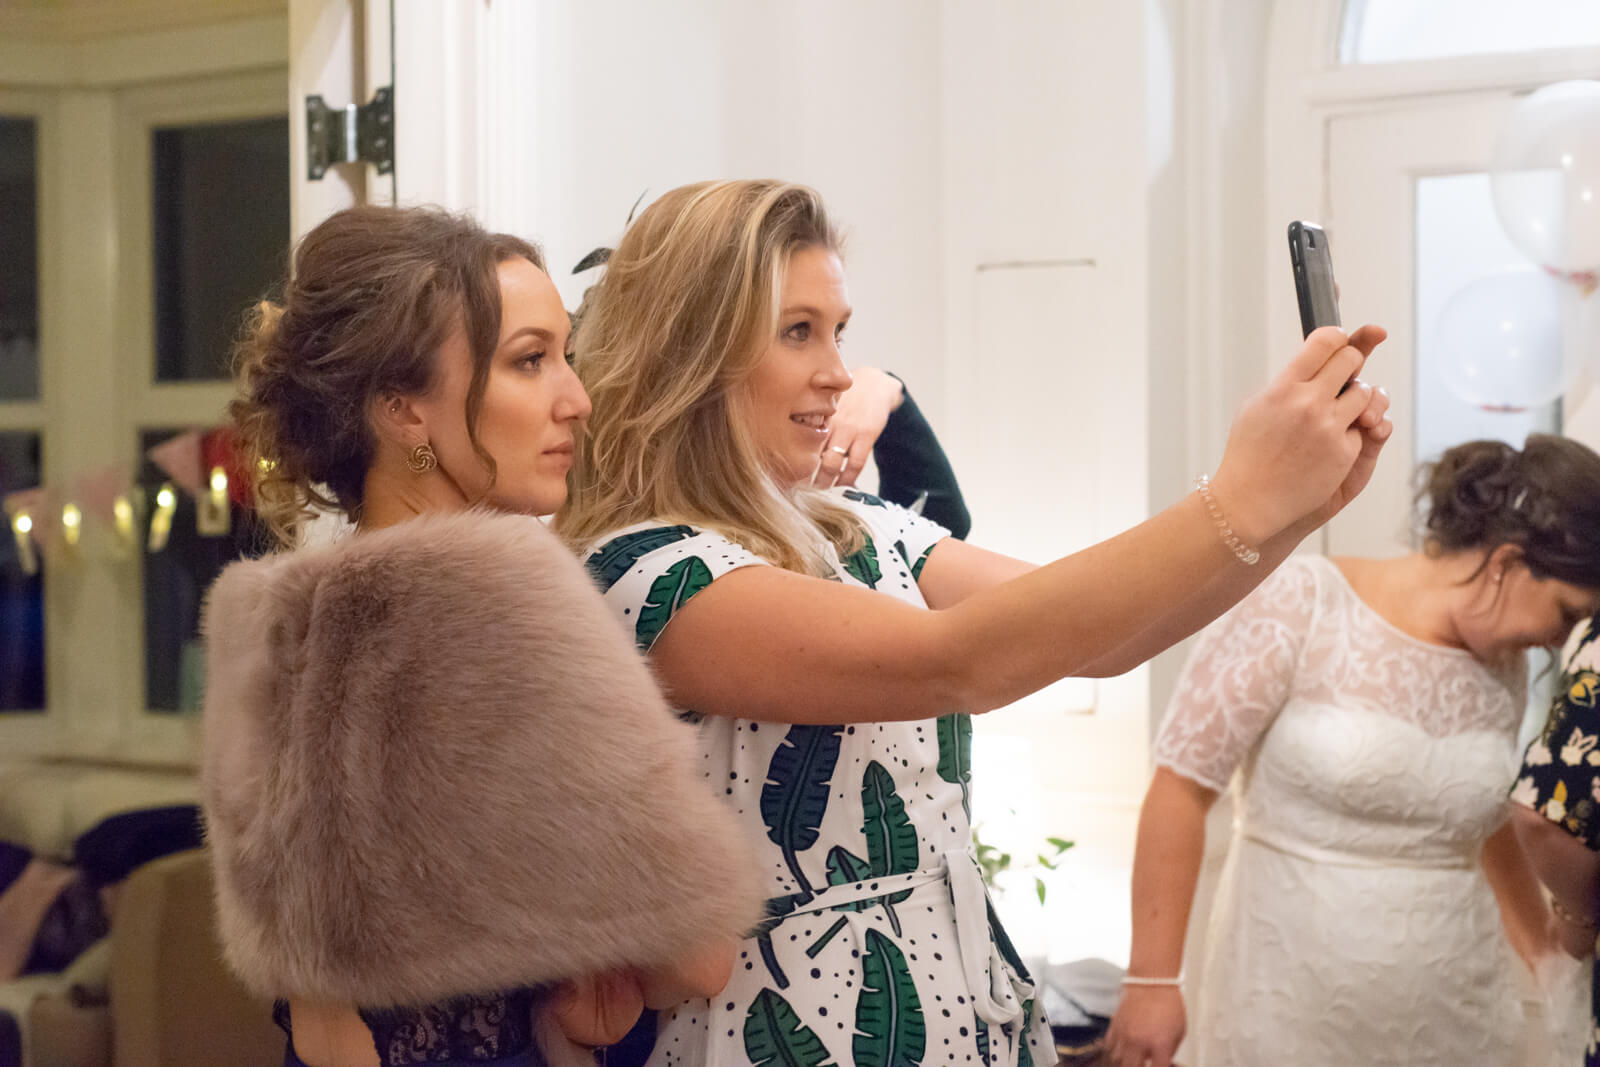 Female guests at the wedding reception take a group selfie